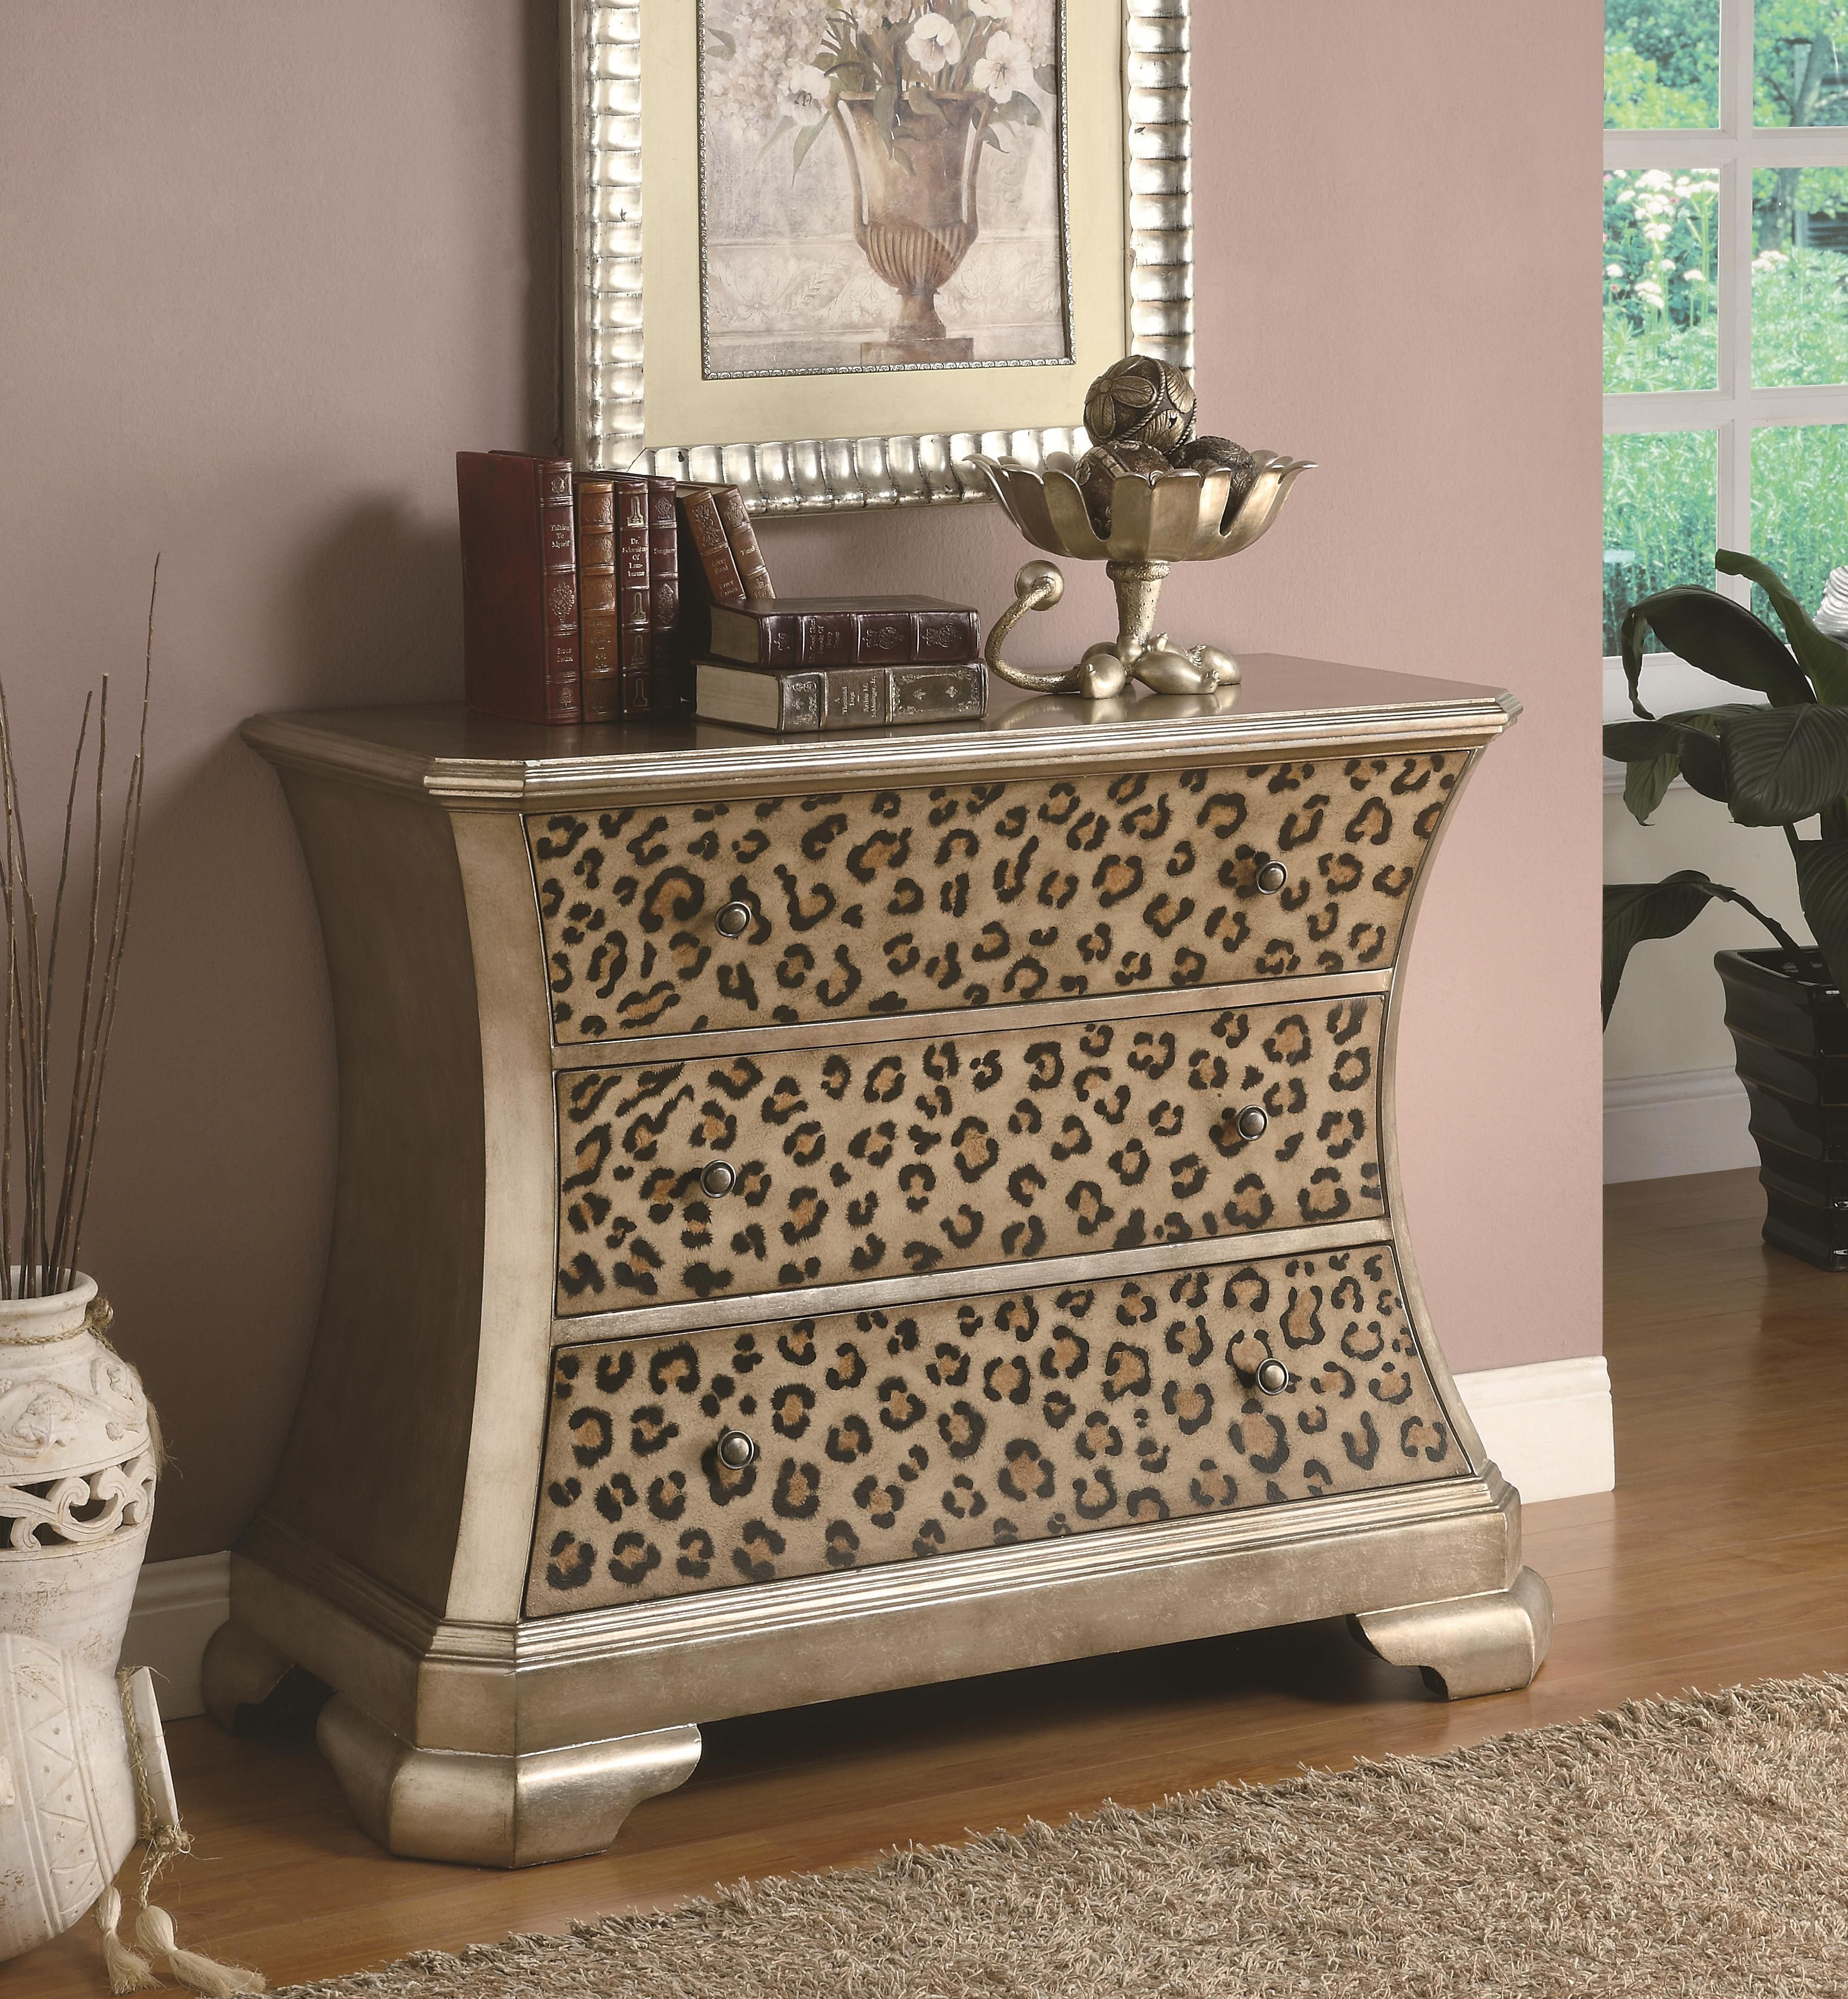 This Accent Dresser With Leopard Print Draws In Our Showroom Today